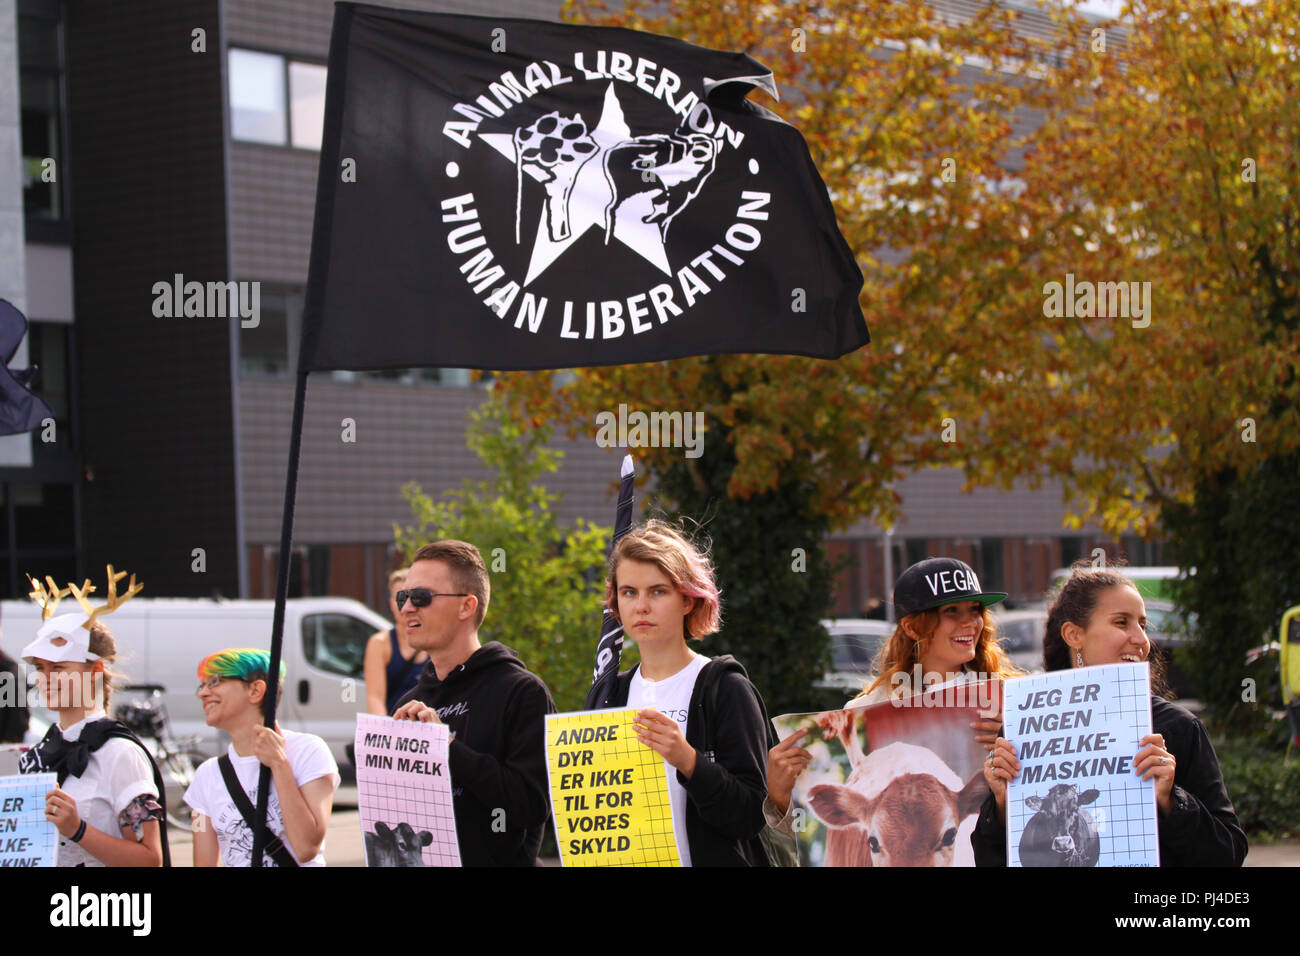 Copenhagen, Denmark - September 1, 2018: Vegan and vegetarians for animal liberation protest at a demonstration against cruelty towards animals and ea - Stock Image